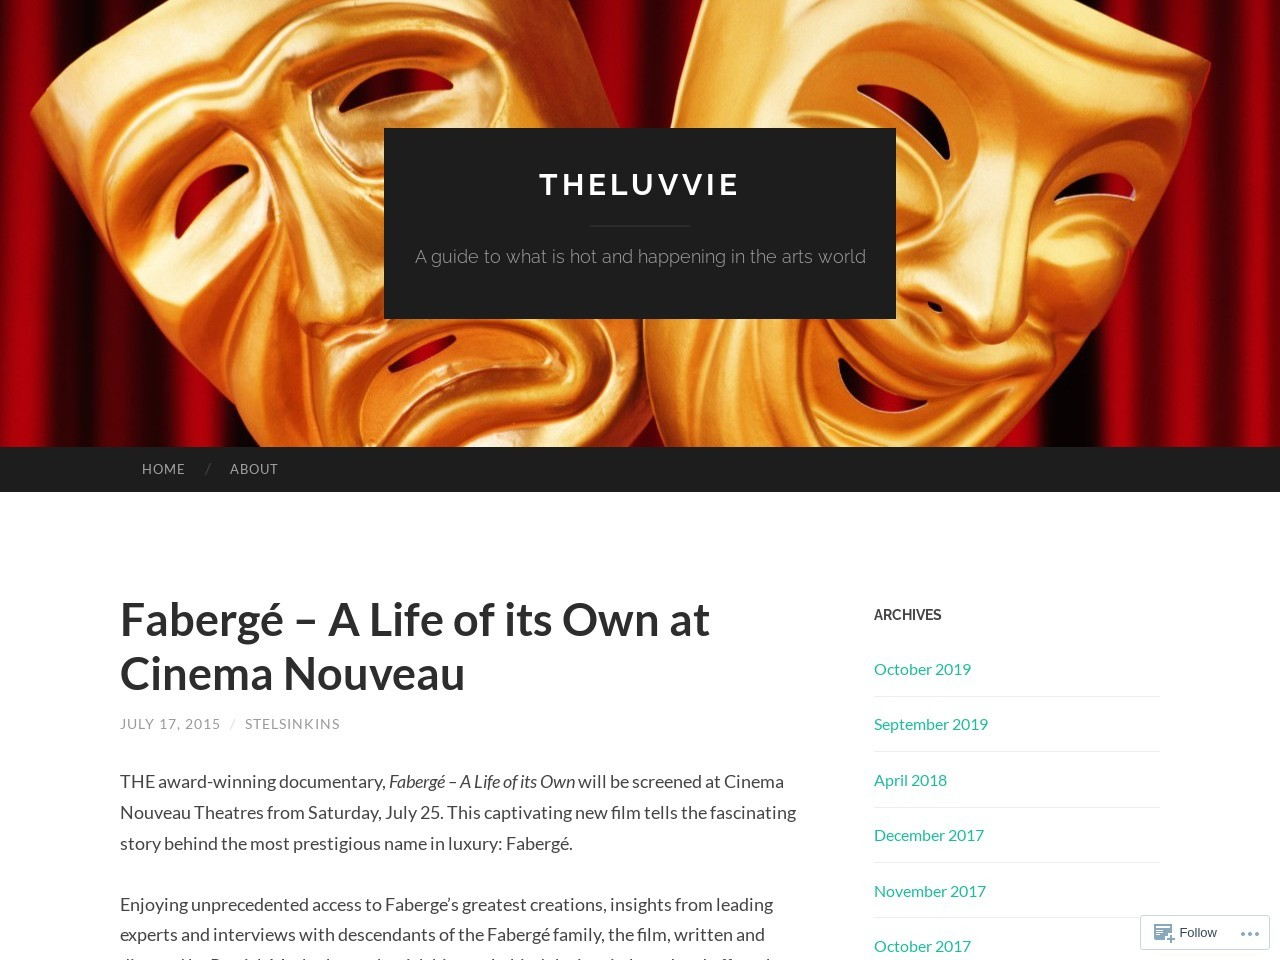 Fabergé – A Life of its Own at Cinema Nouveau | theluvvie